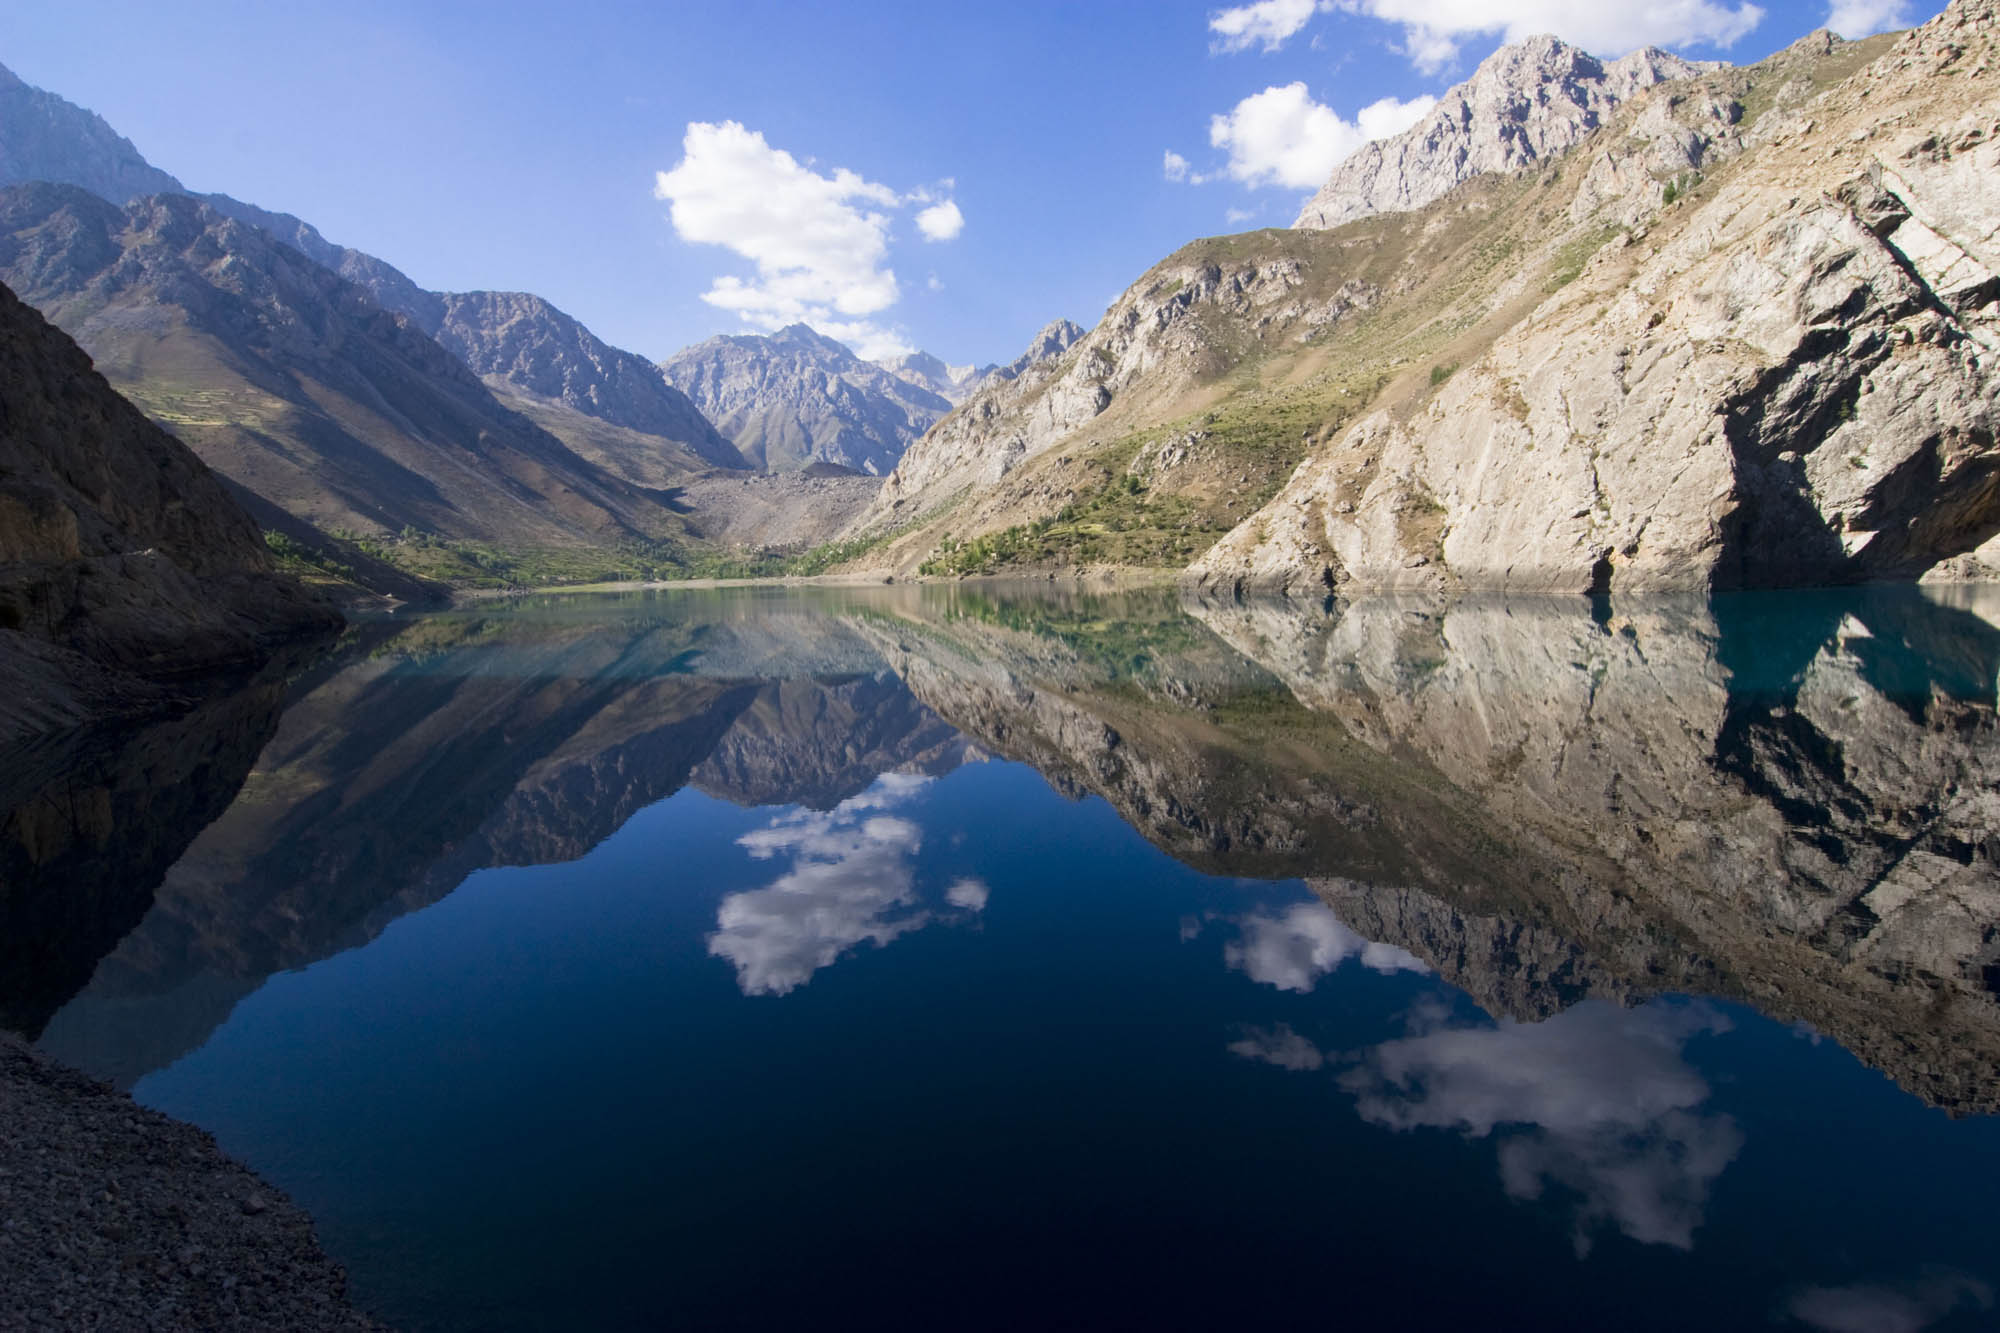 Haftkul lake in Zarafshan valley. Photographer: Nozim Qalandarov